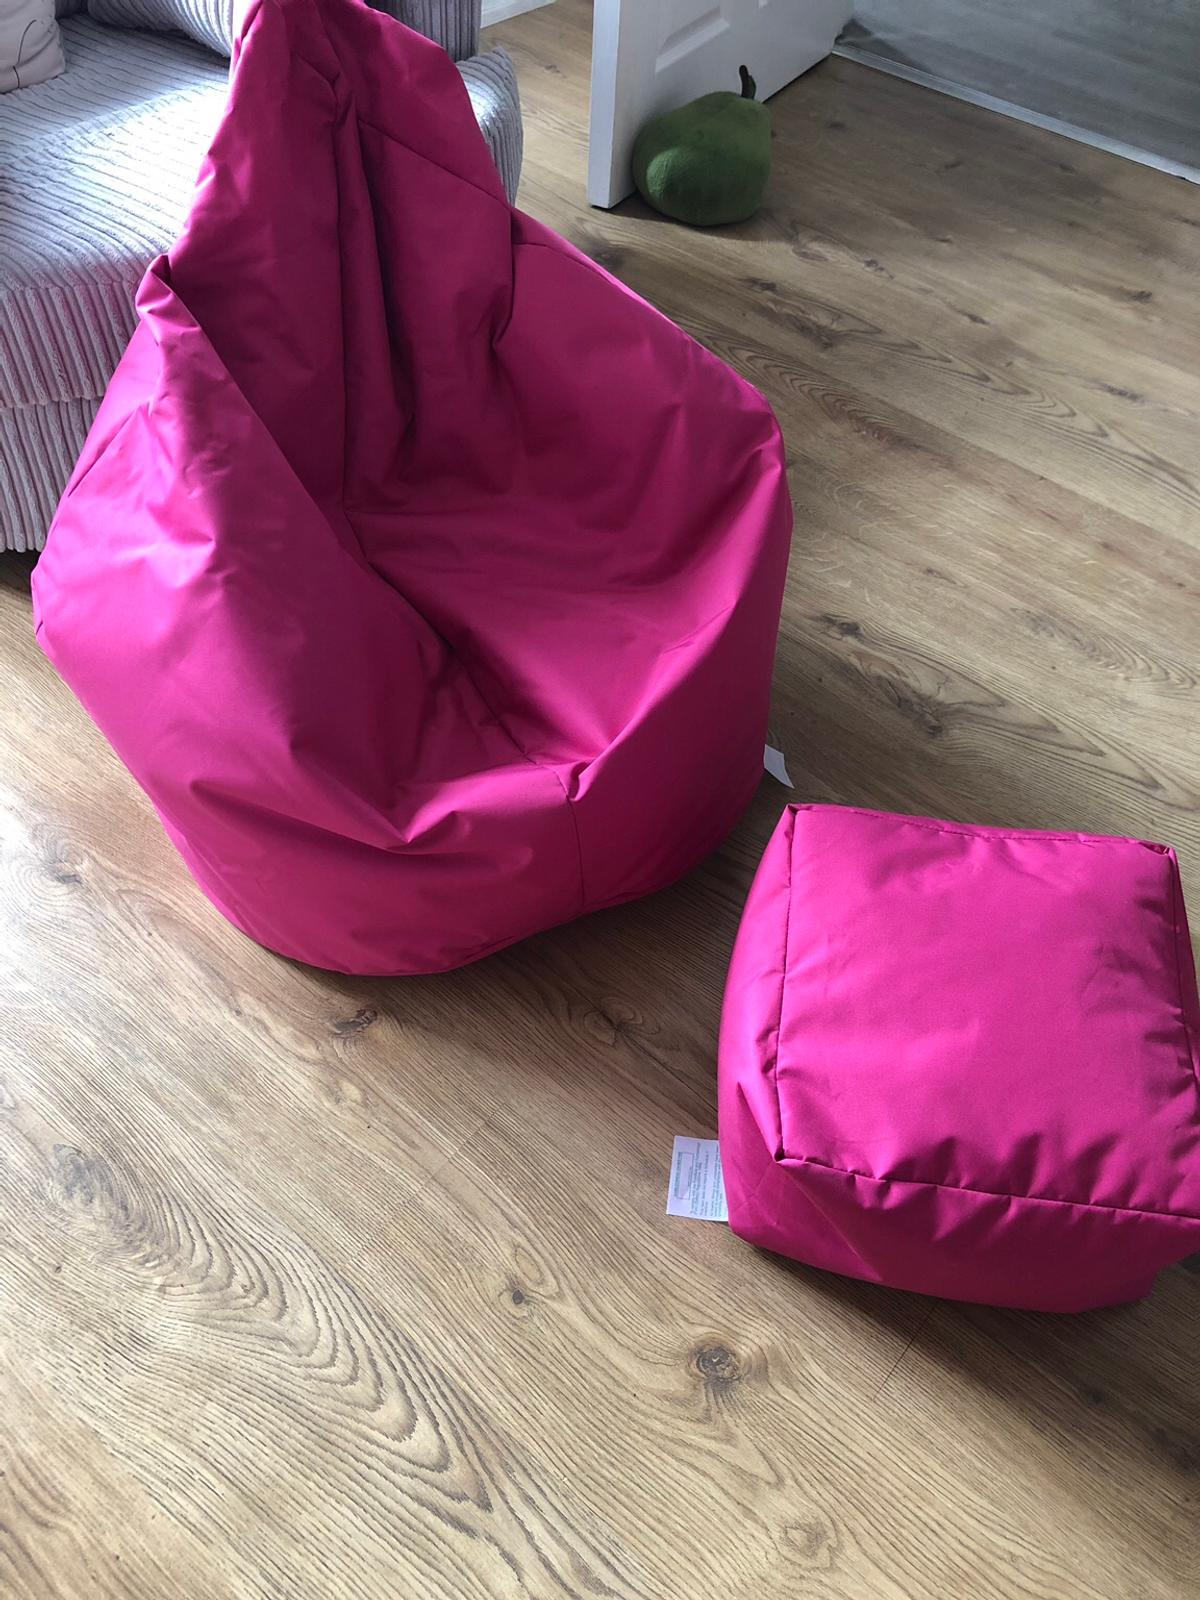 Collections Of Large Bean Bag Gaming Chair With Foot Rest